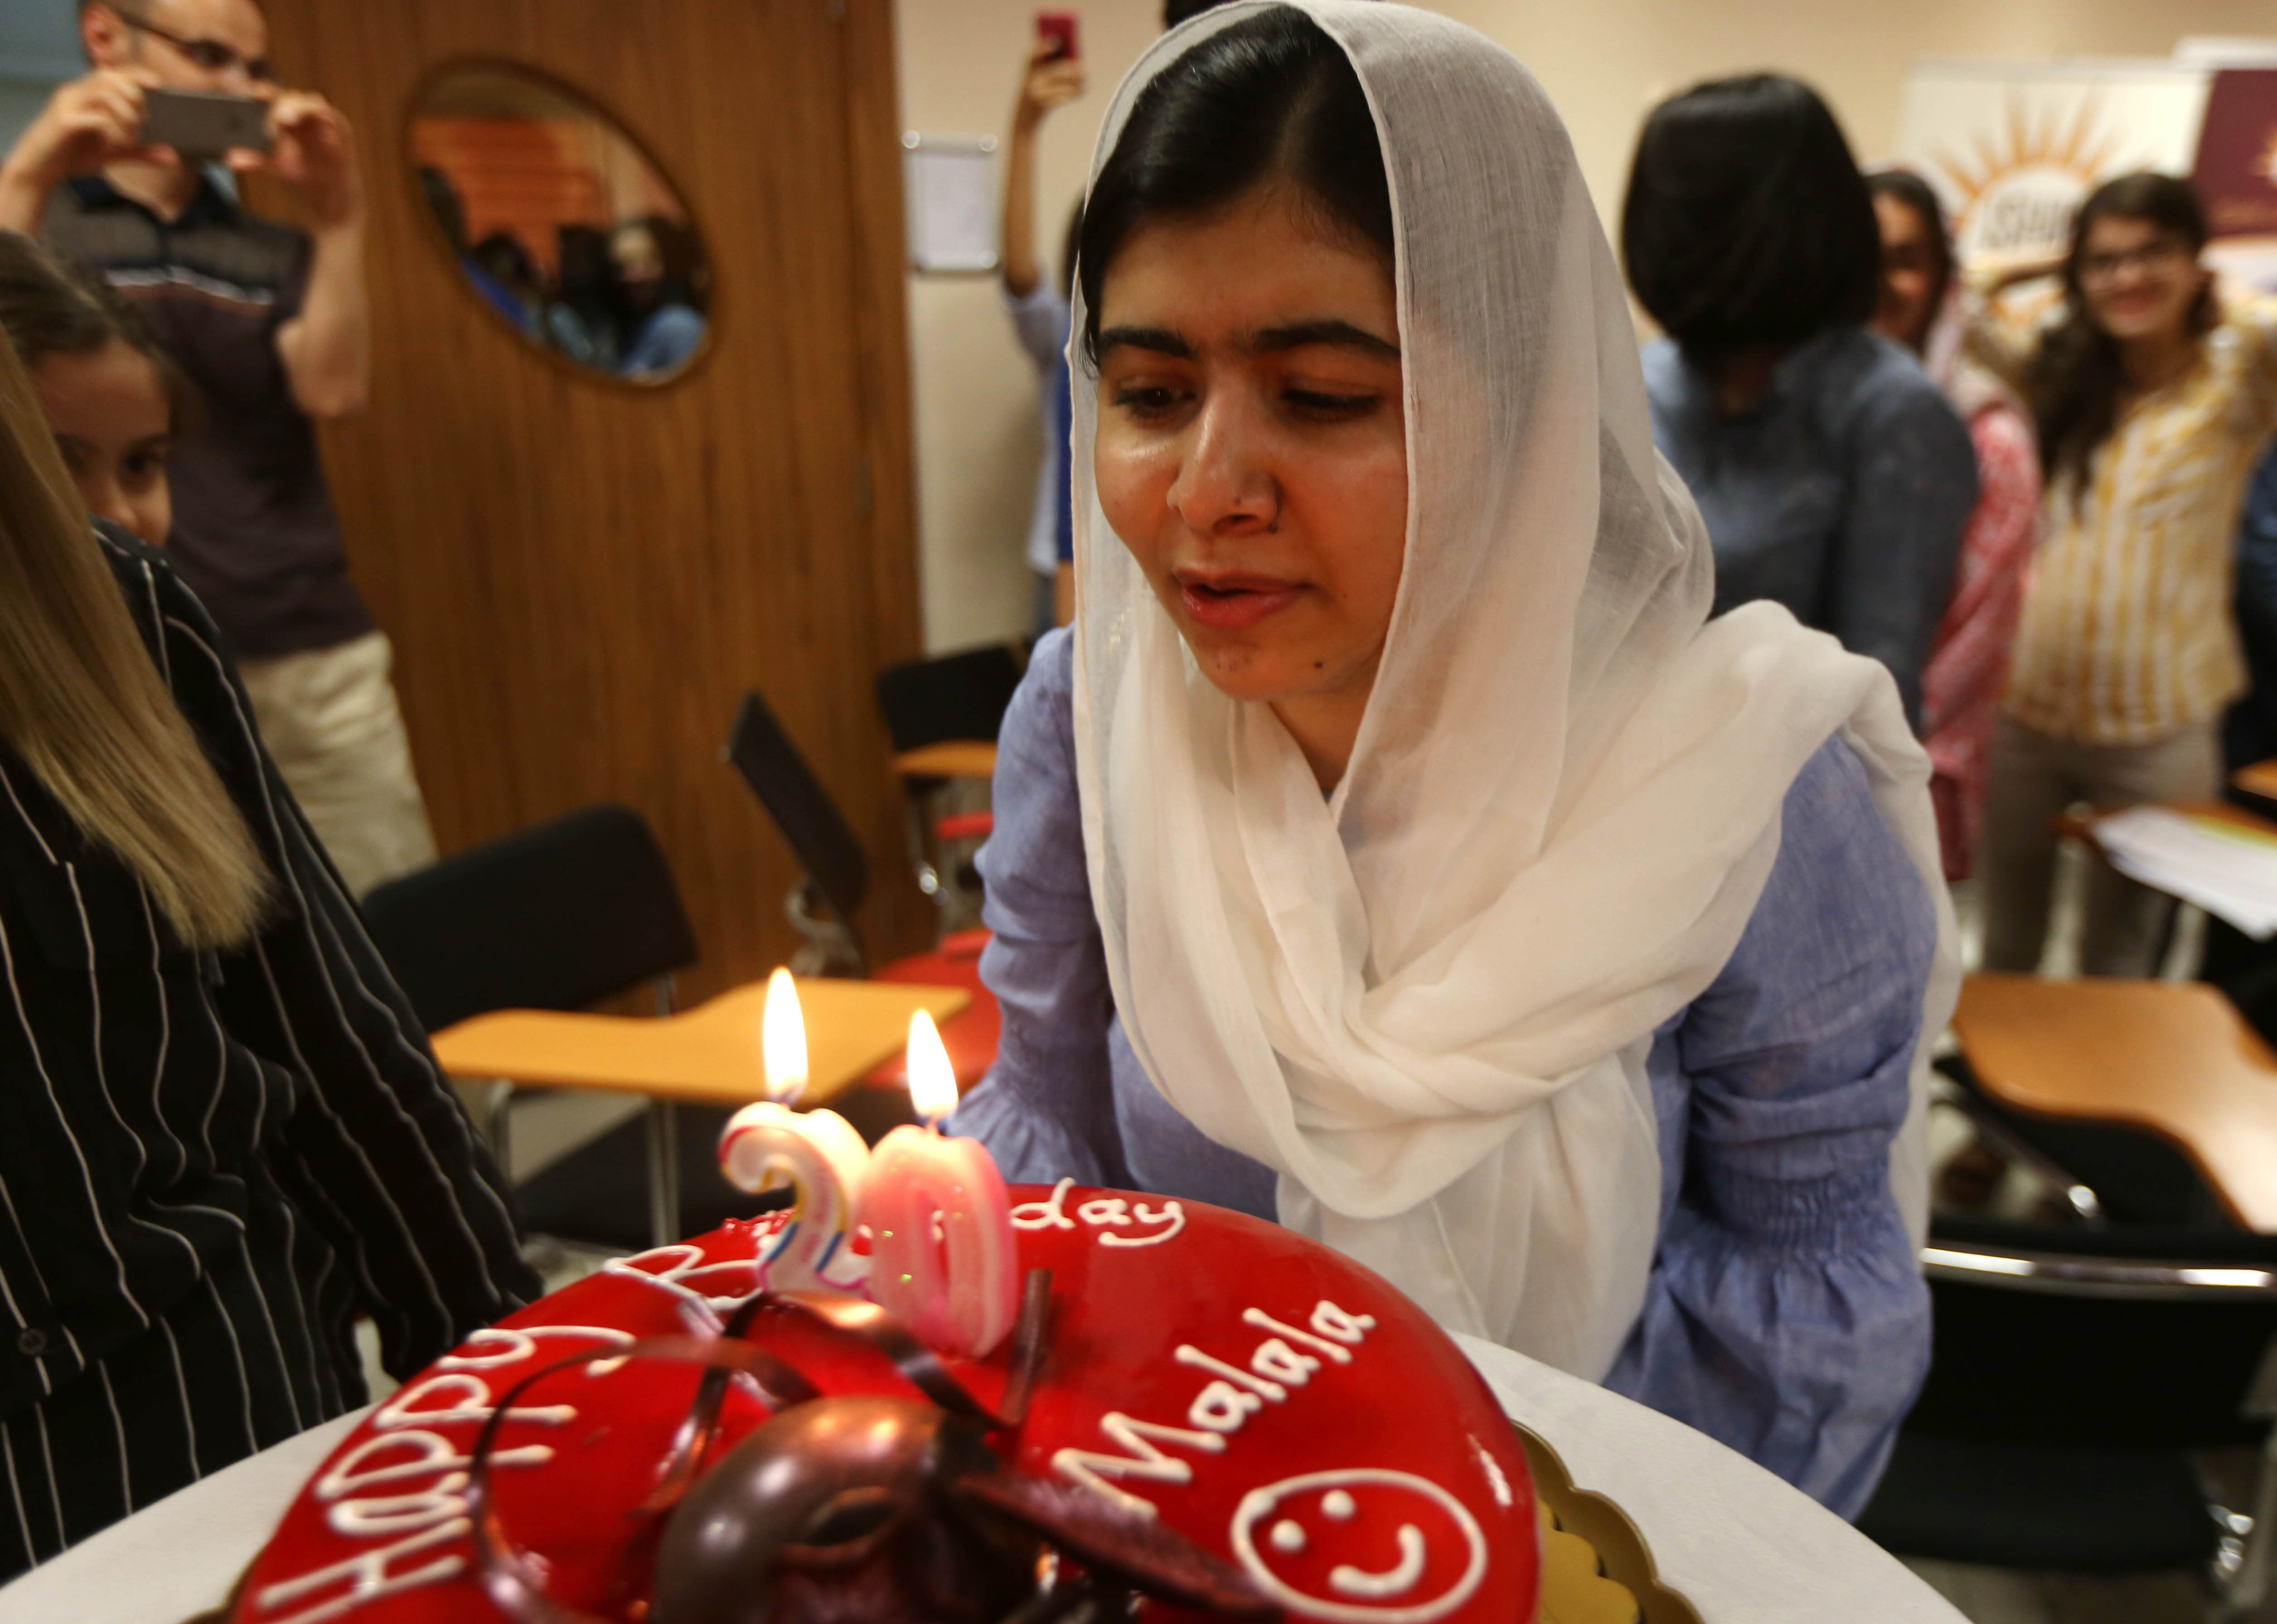 Pakistani Nobel Peace Laureate Malala Yousafzai (C) blows out candles on a cake on the eve of her birthday as she meets with students of the University in Arbil, the capital of the autonomous Kurdish region of northern Iraq, on July 11, 2017. / AFP PHOTO / SAFIN HAMED        (Photo credit should read SAFIN HAMED/AFP/Getty Images)